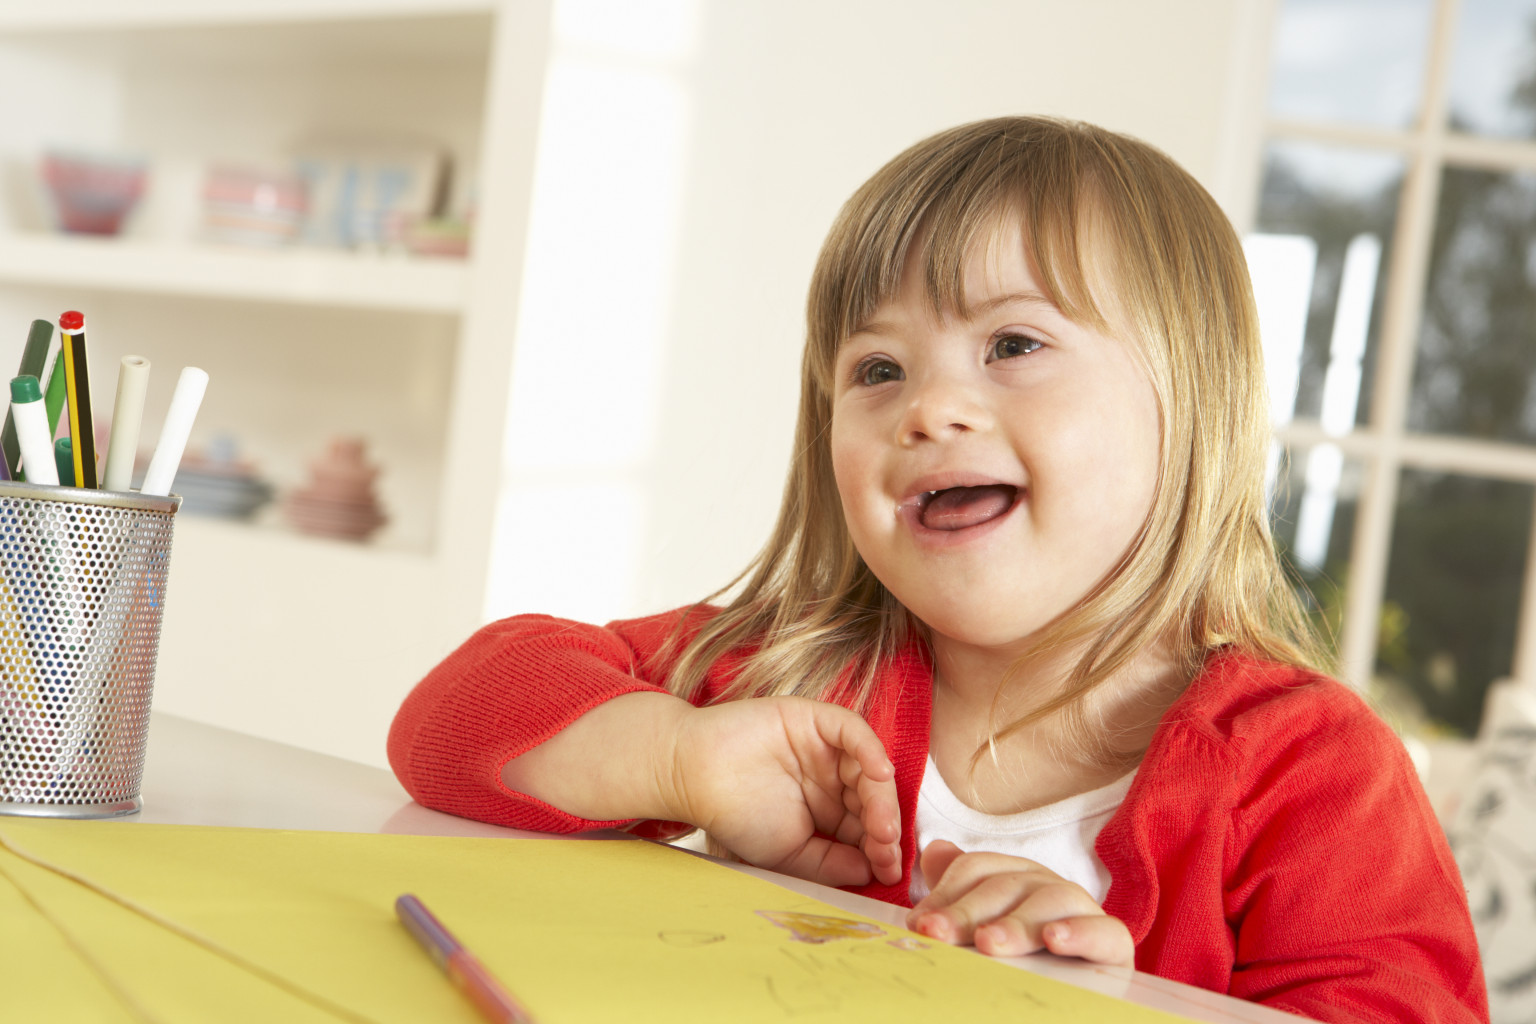 Down S Syndrome Could Be Switched Off Say Scientists